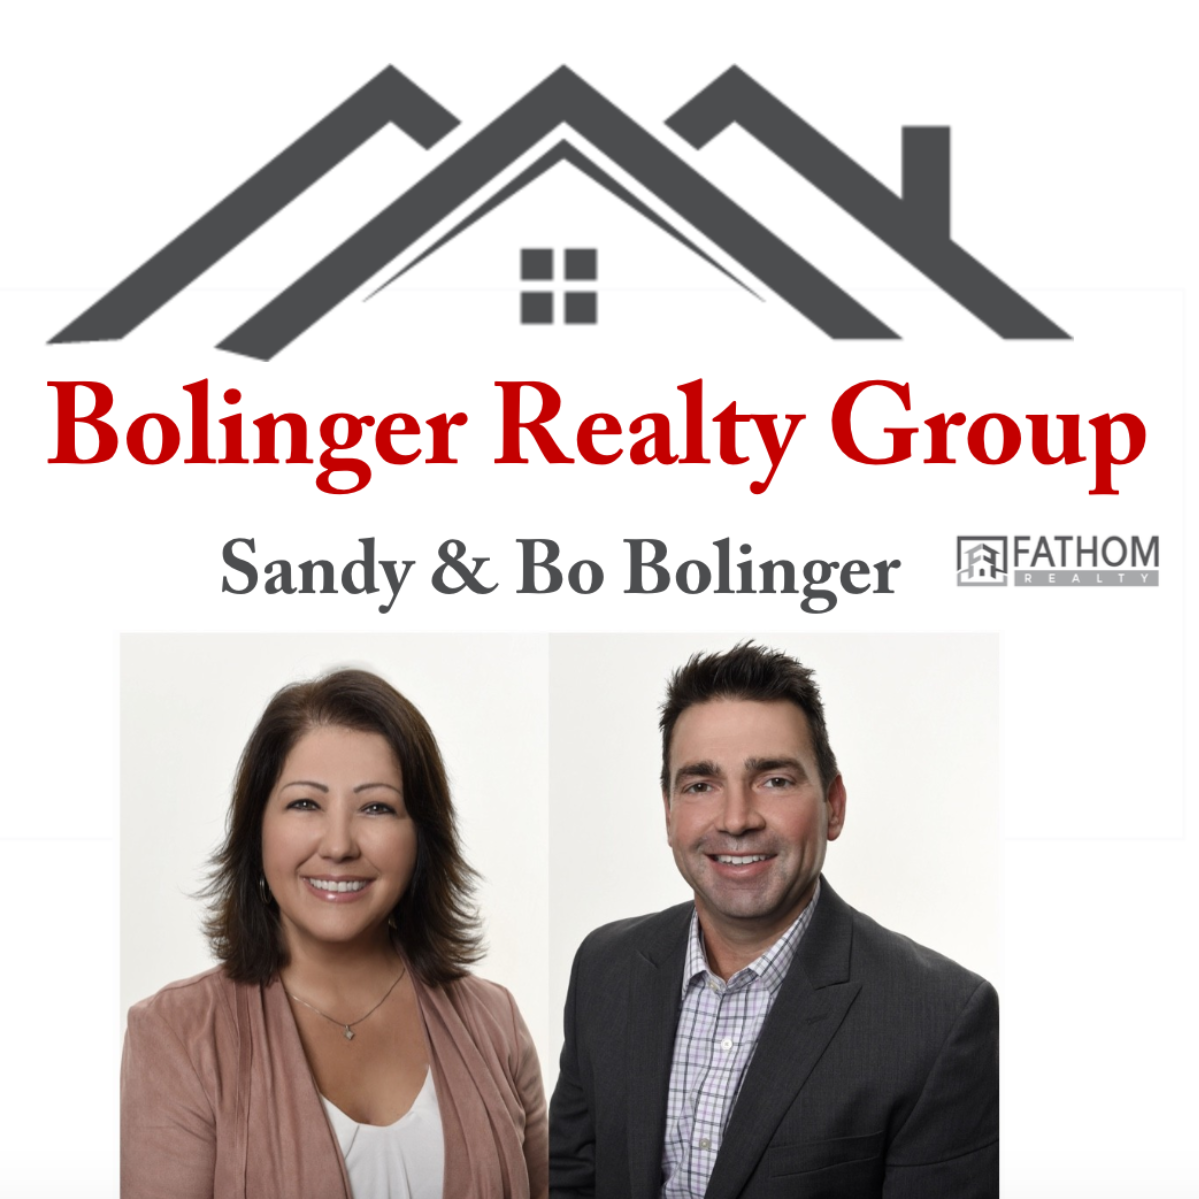 Bolinger Realty Group